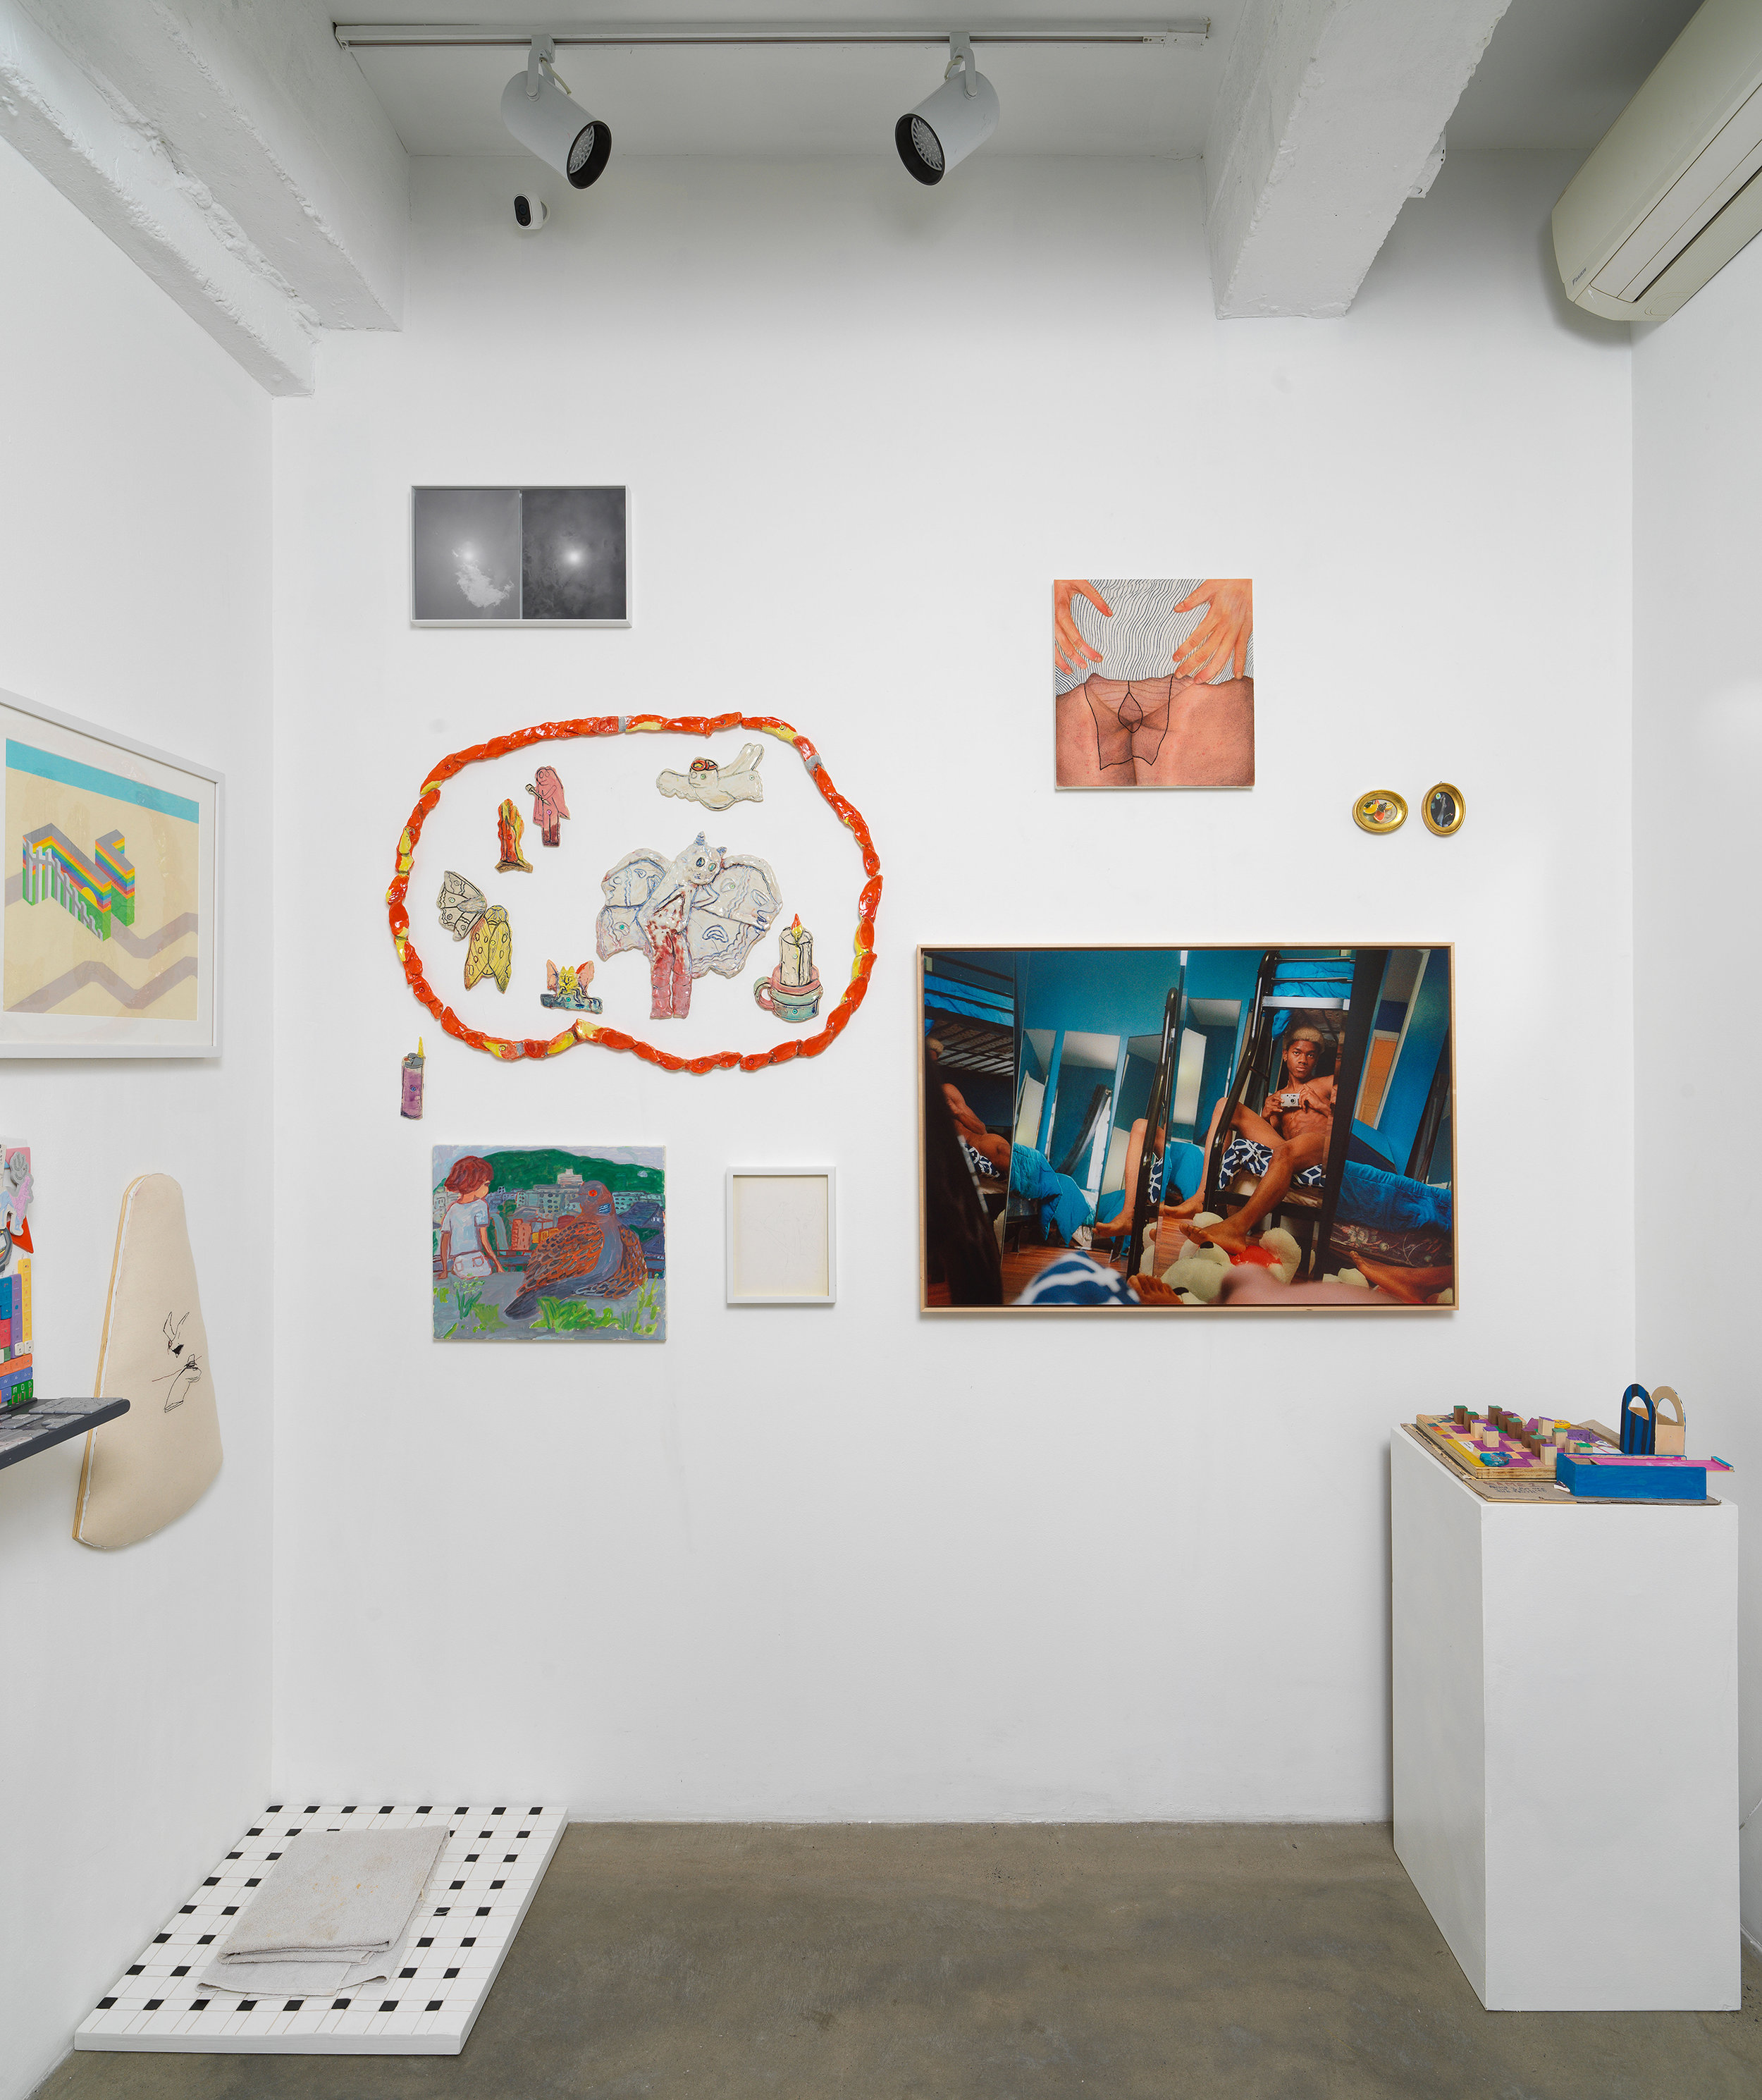 Installation view of 'Can You Dream It' featuring salon-style hanging of multimedia works by various artists, floor and pedesal-based sculpture